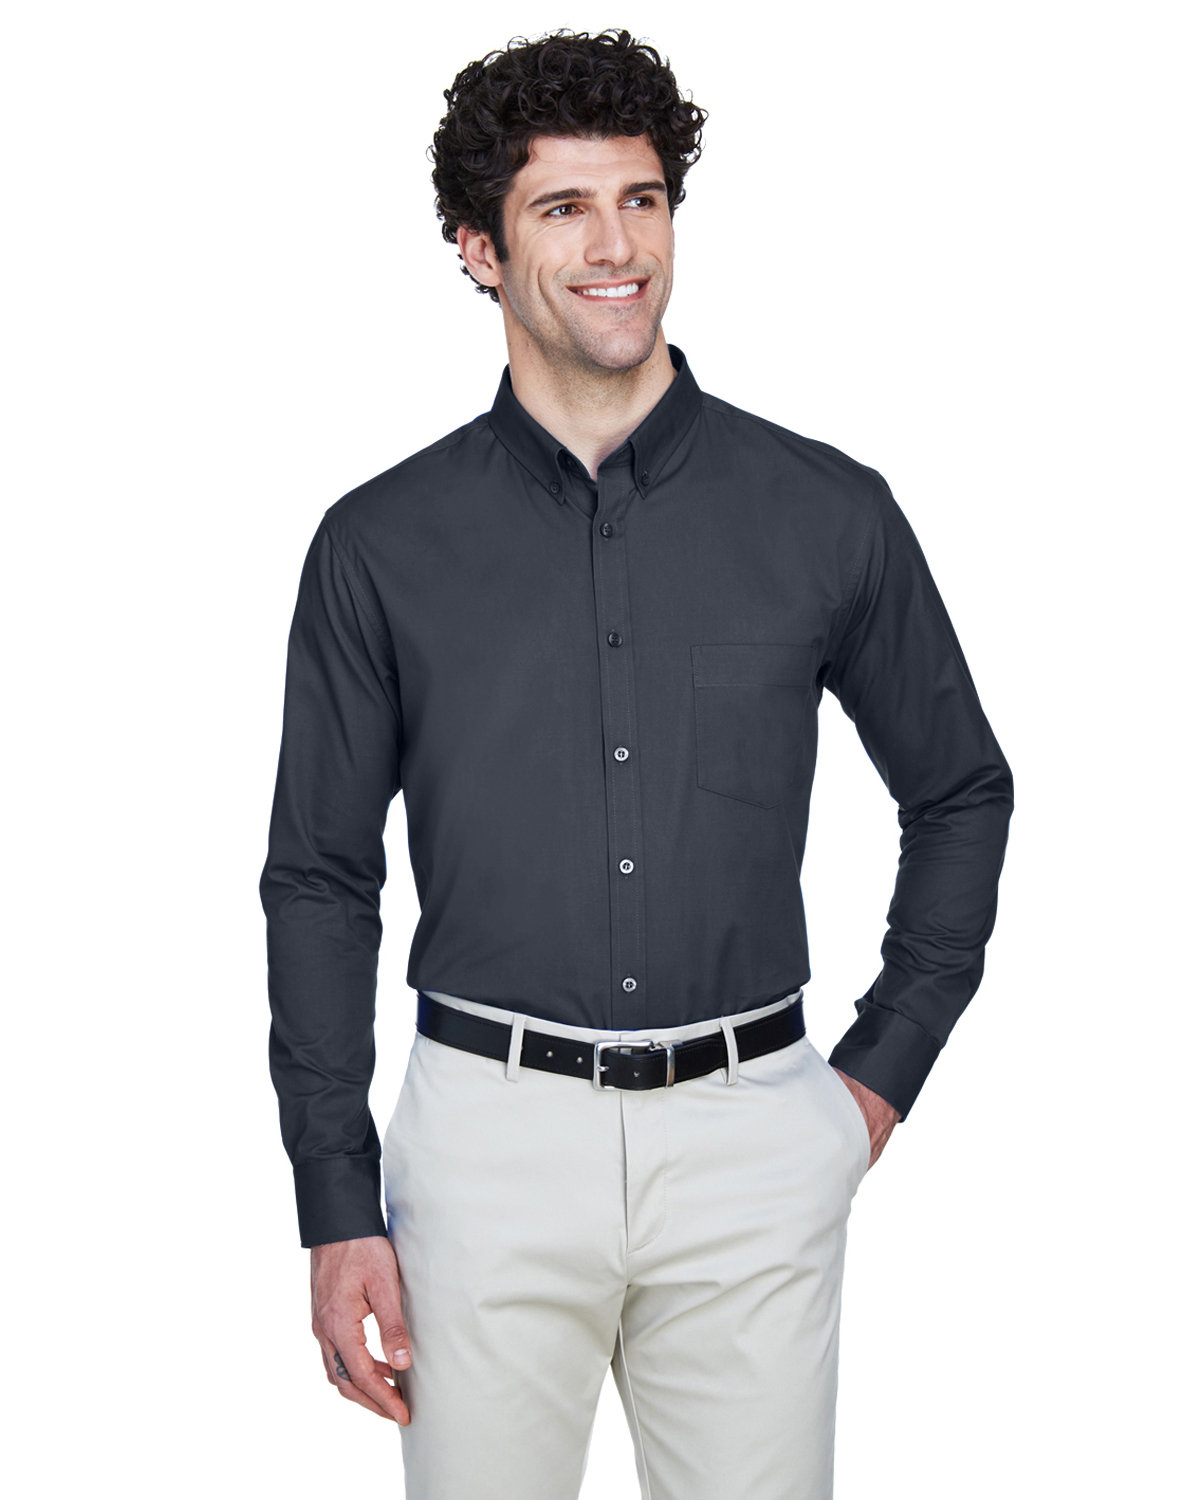 Core 365 Men's Operate Long-Sleeve Twill Shirt CARBON